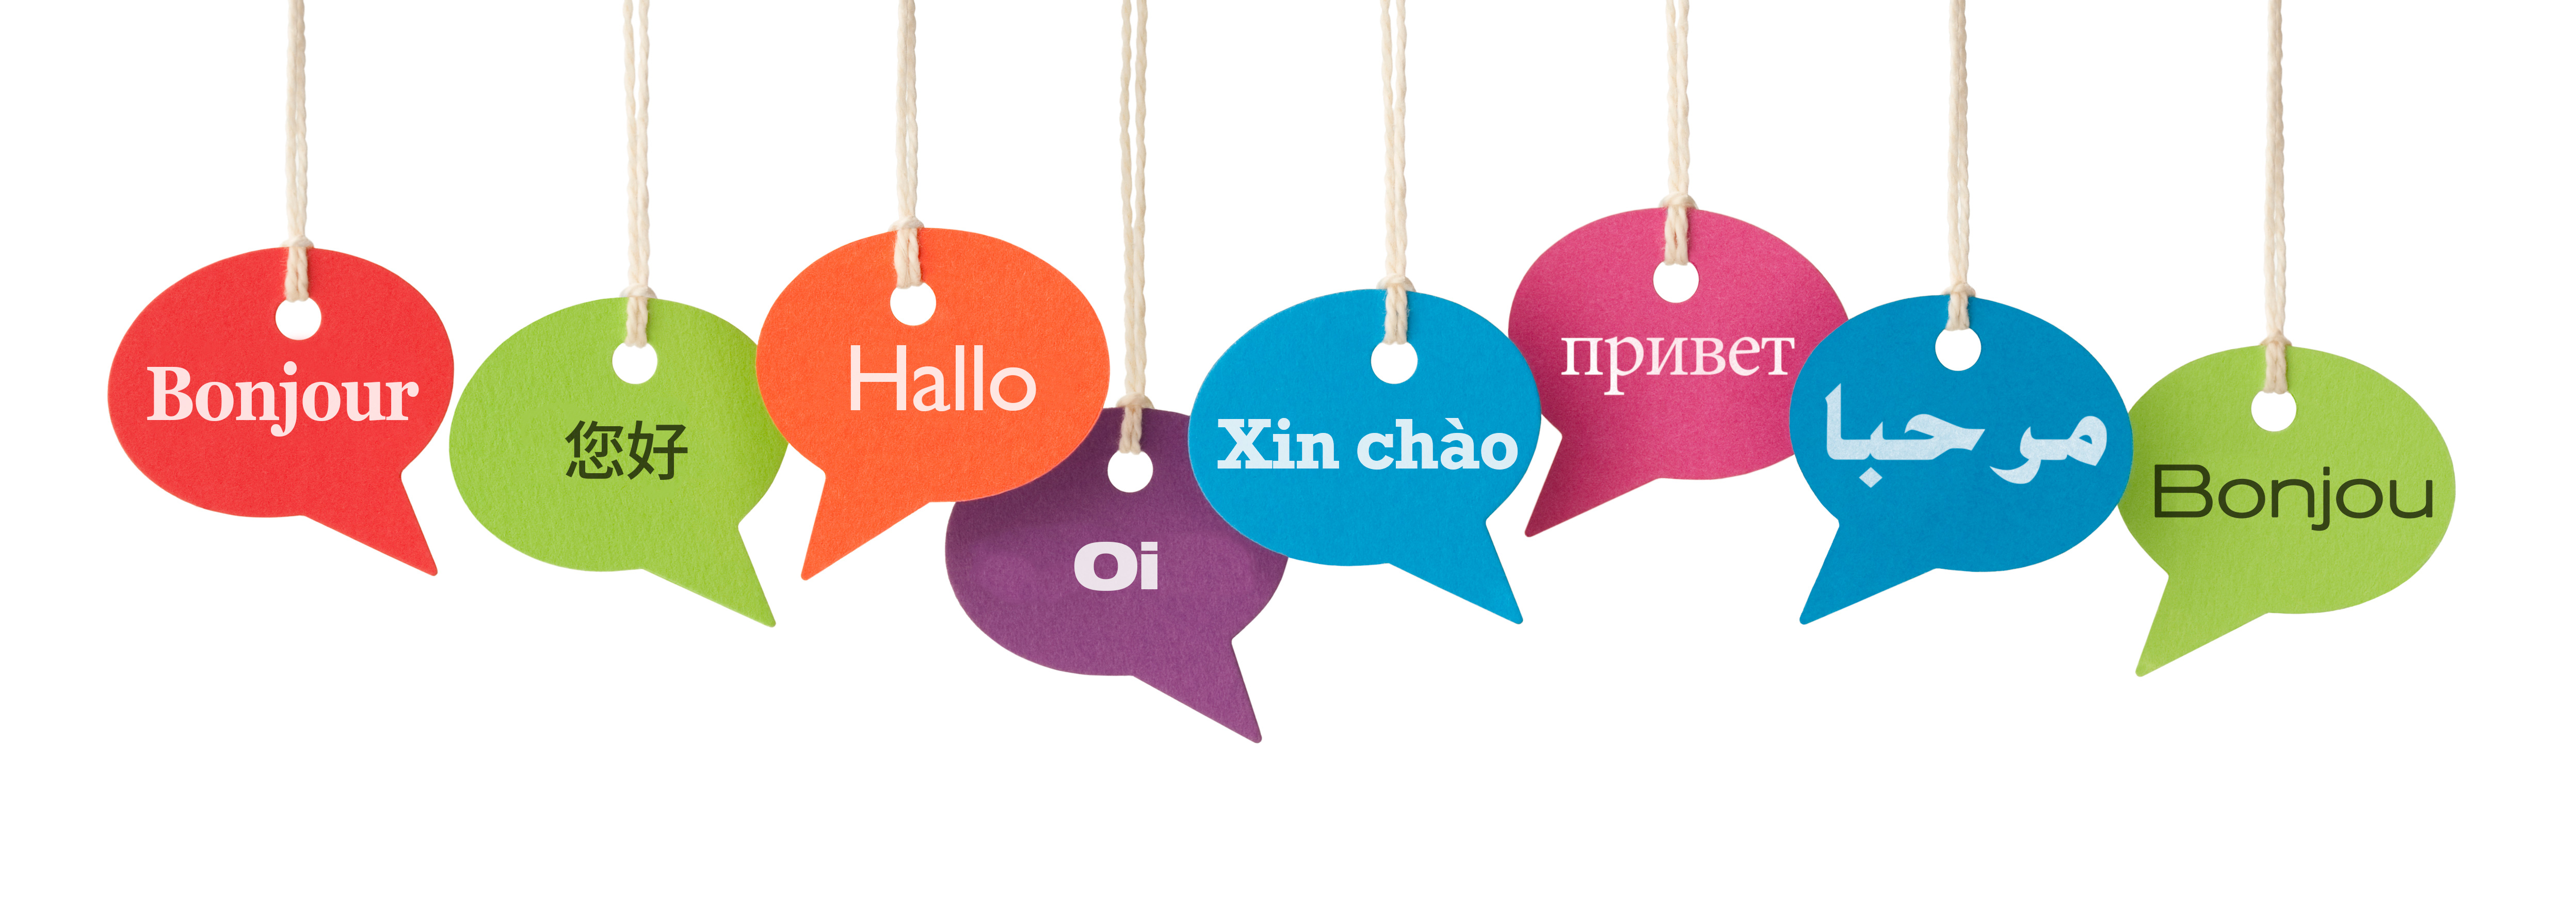 Speech bubbles contain the word HELLO in eight different languages. French, Chinese, German, Portuguese Br, Vietnamese, Russian, Arabic and Haitian Creole.